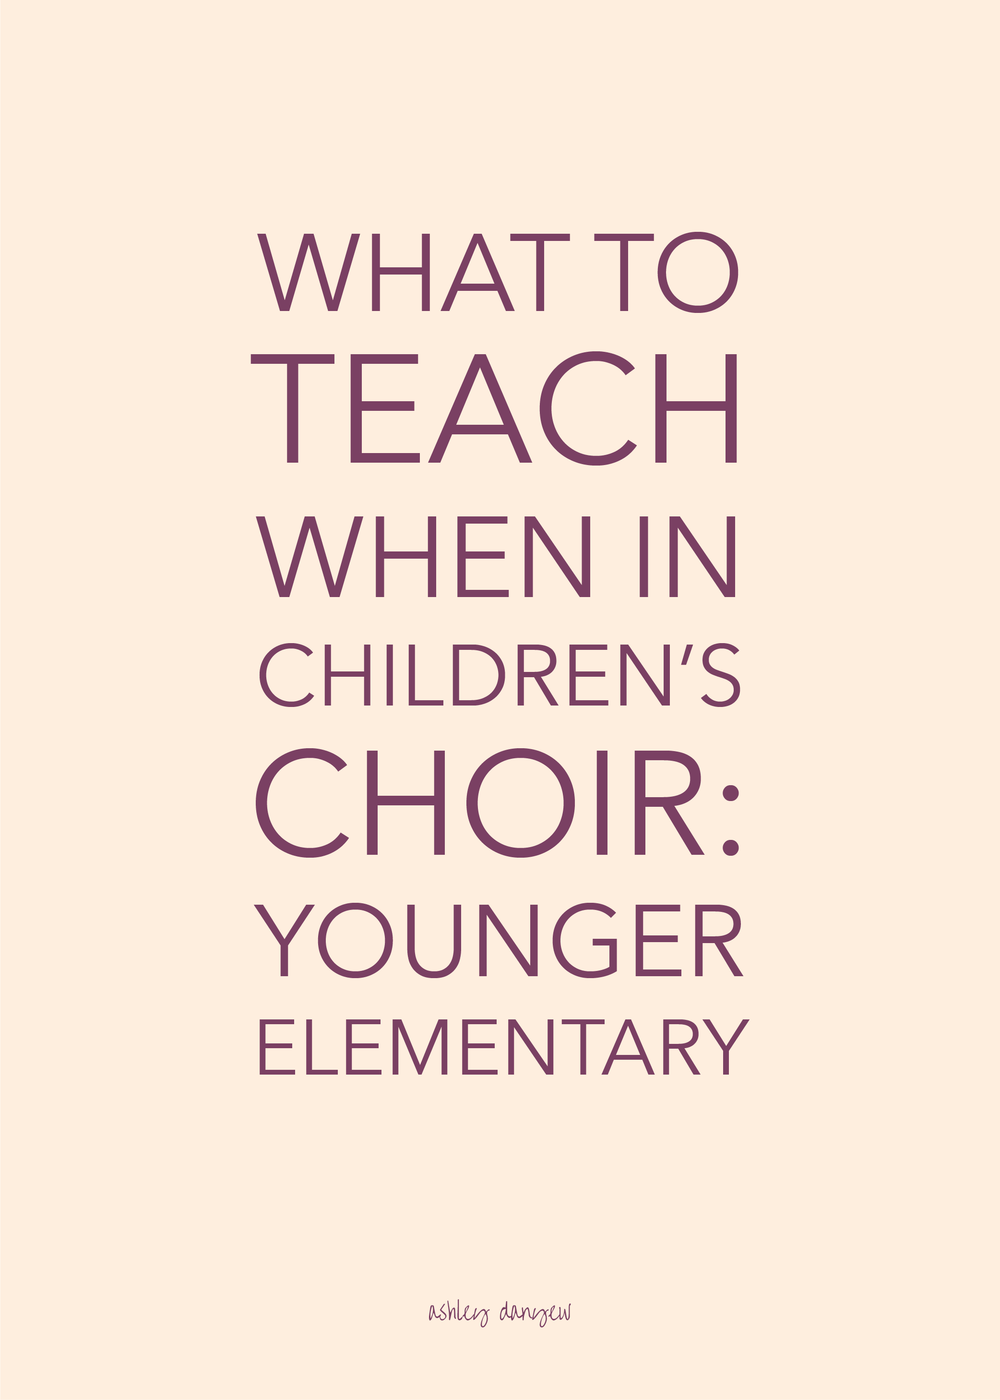 What to Teach When in Children's Choir - Younger Elementary